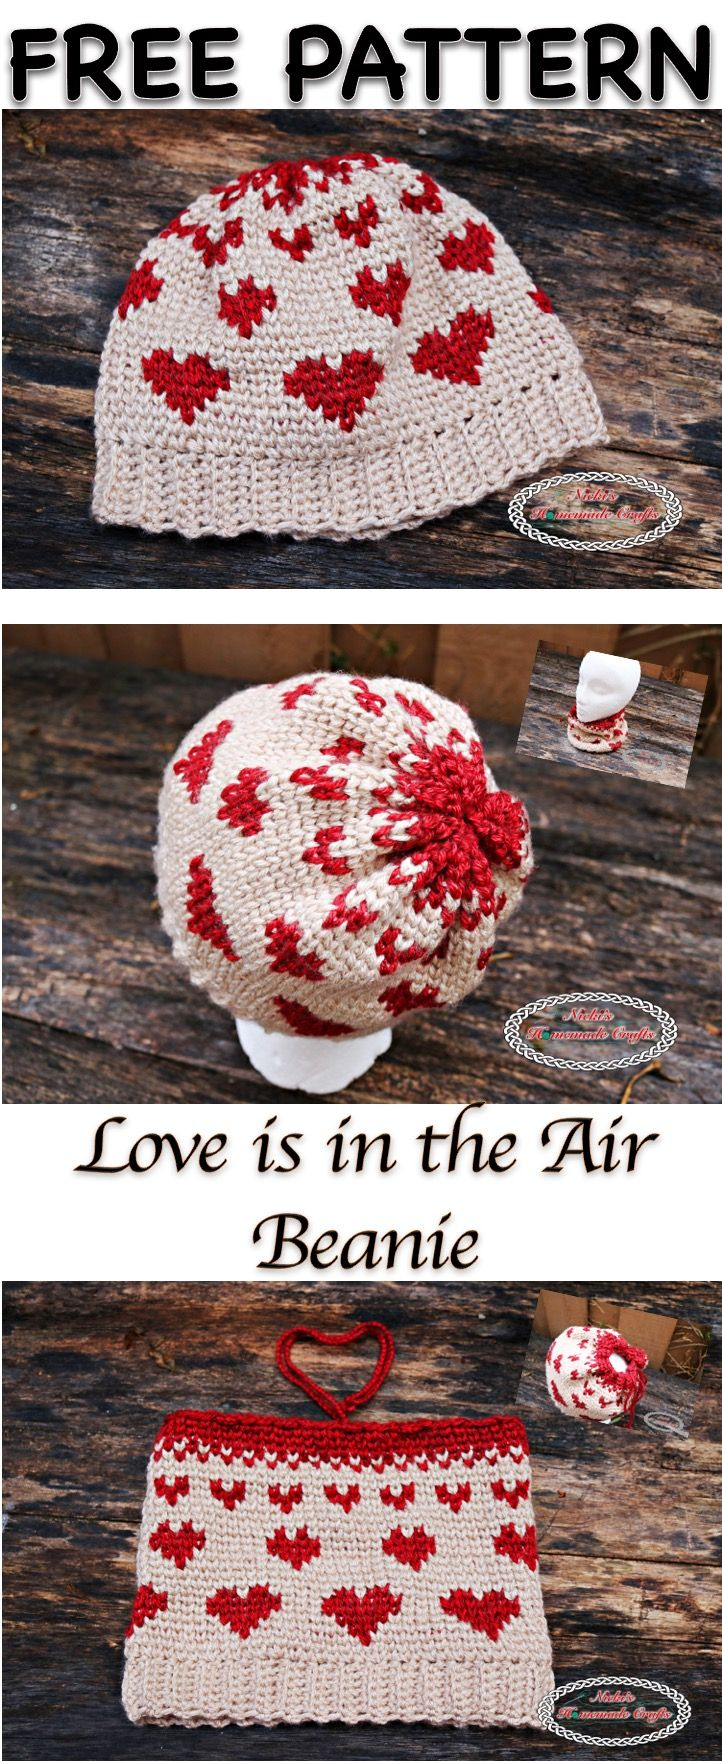 Love is in the air beanie free crochet pattern by nickis love is in the air beanie free crochet pattern by nickis homemade crafts bankloansurffo Image collections